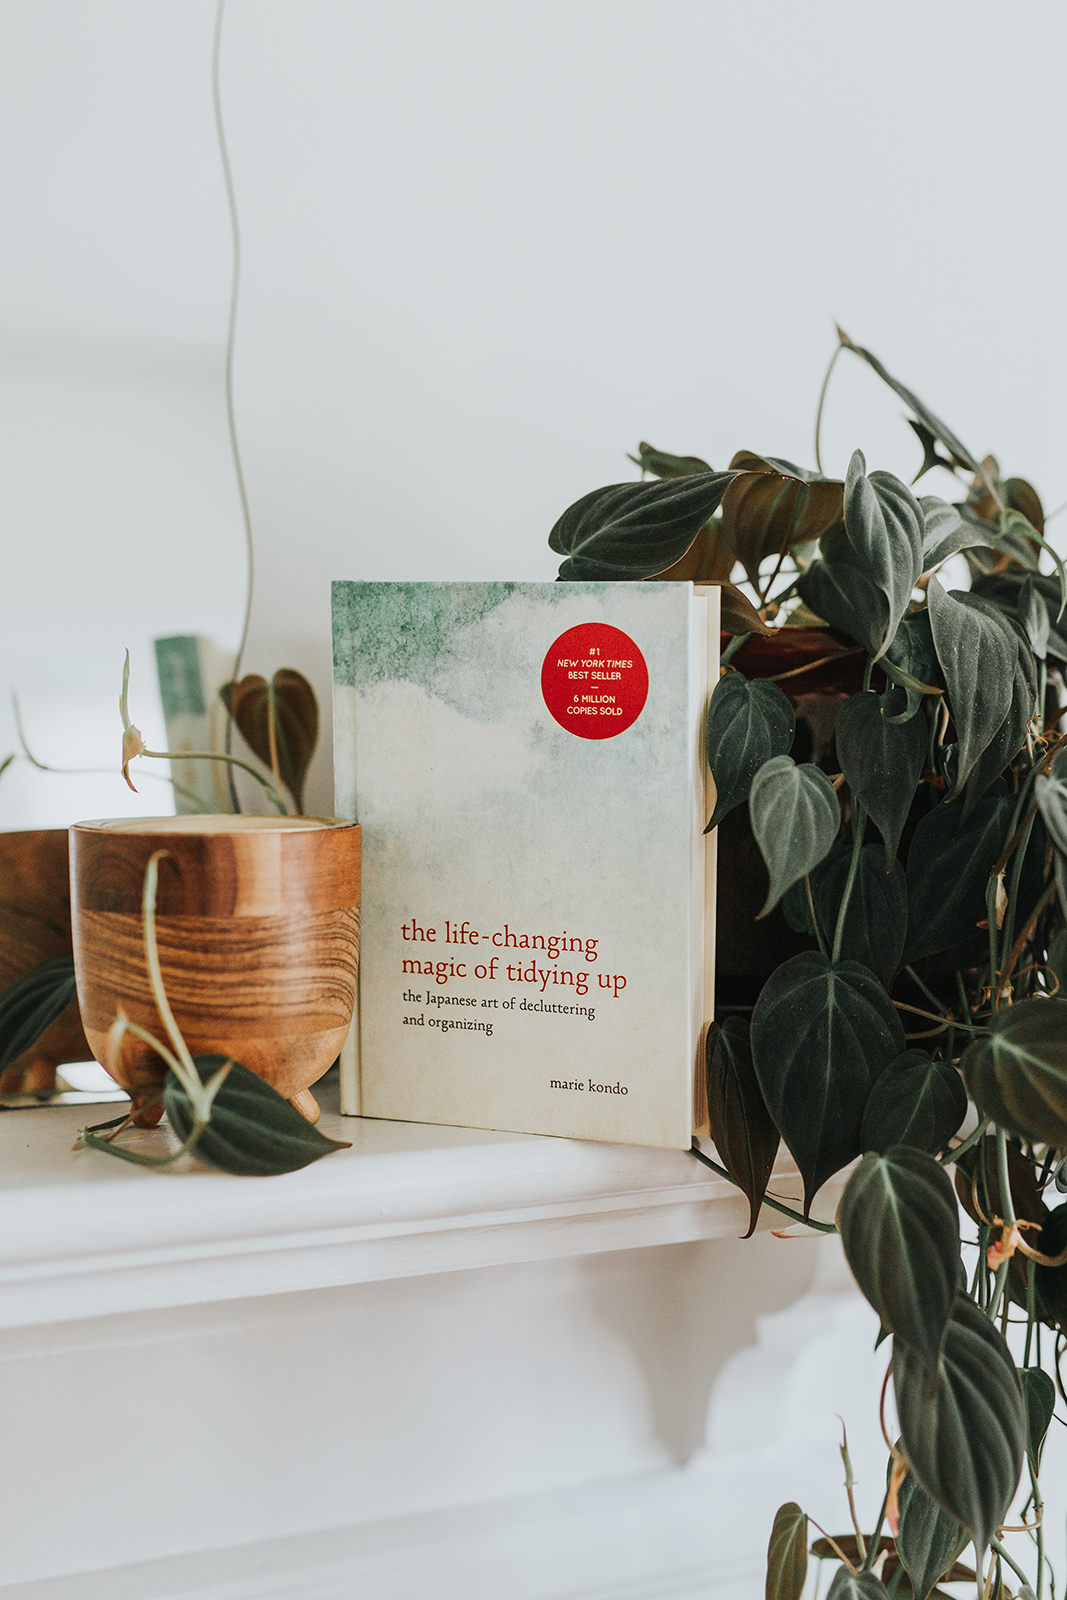 Marie Kondo's first book, the international bestseller  The Life-Changing Magic of Tidying Up . This book explains her revolutionary home organization method, The KonMari Method.